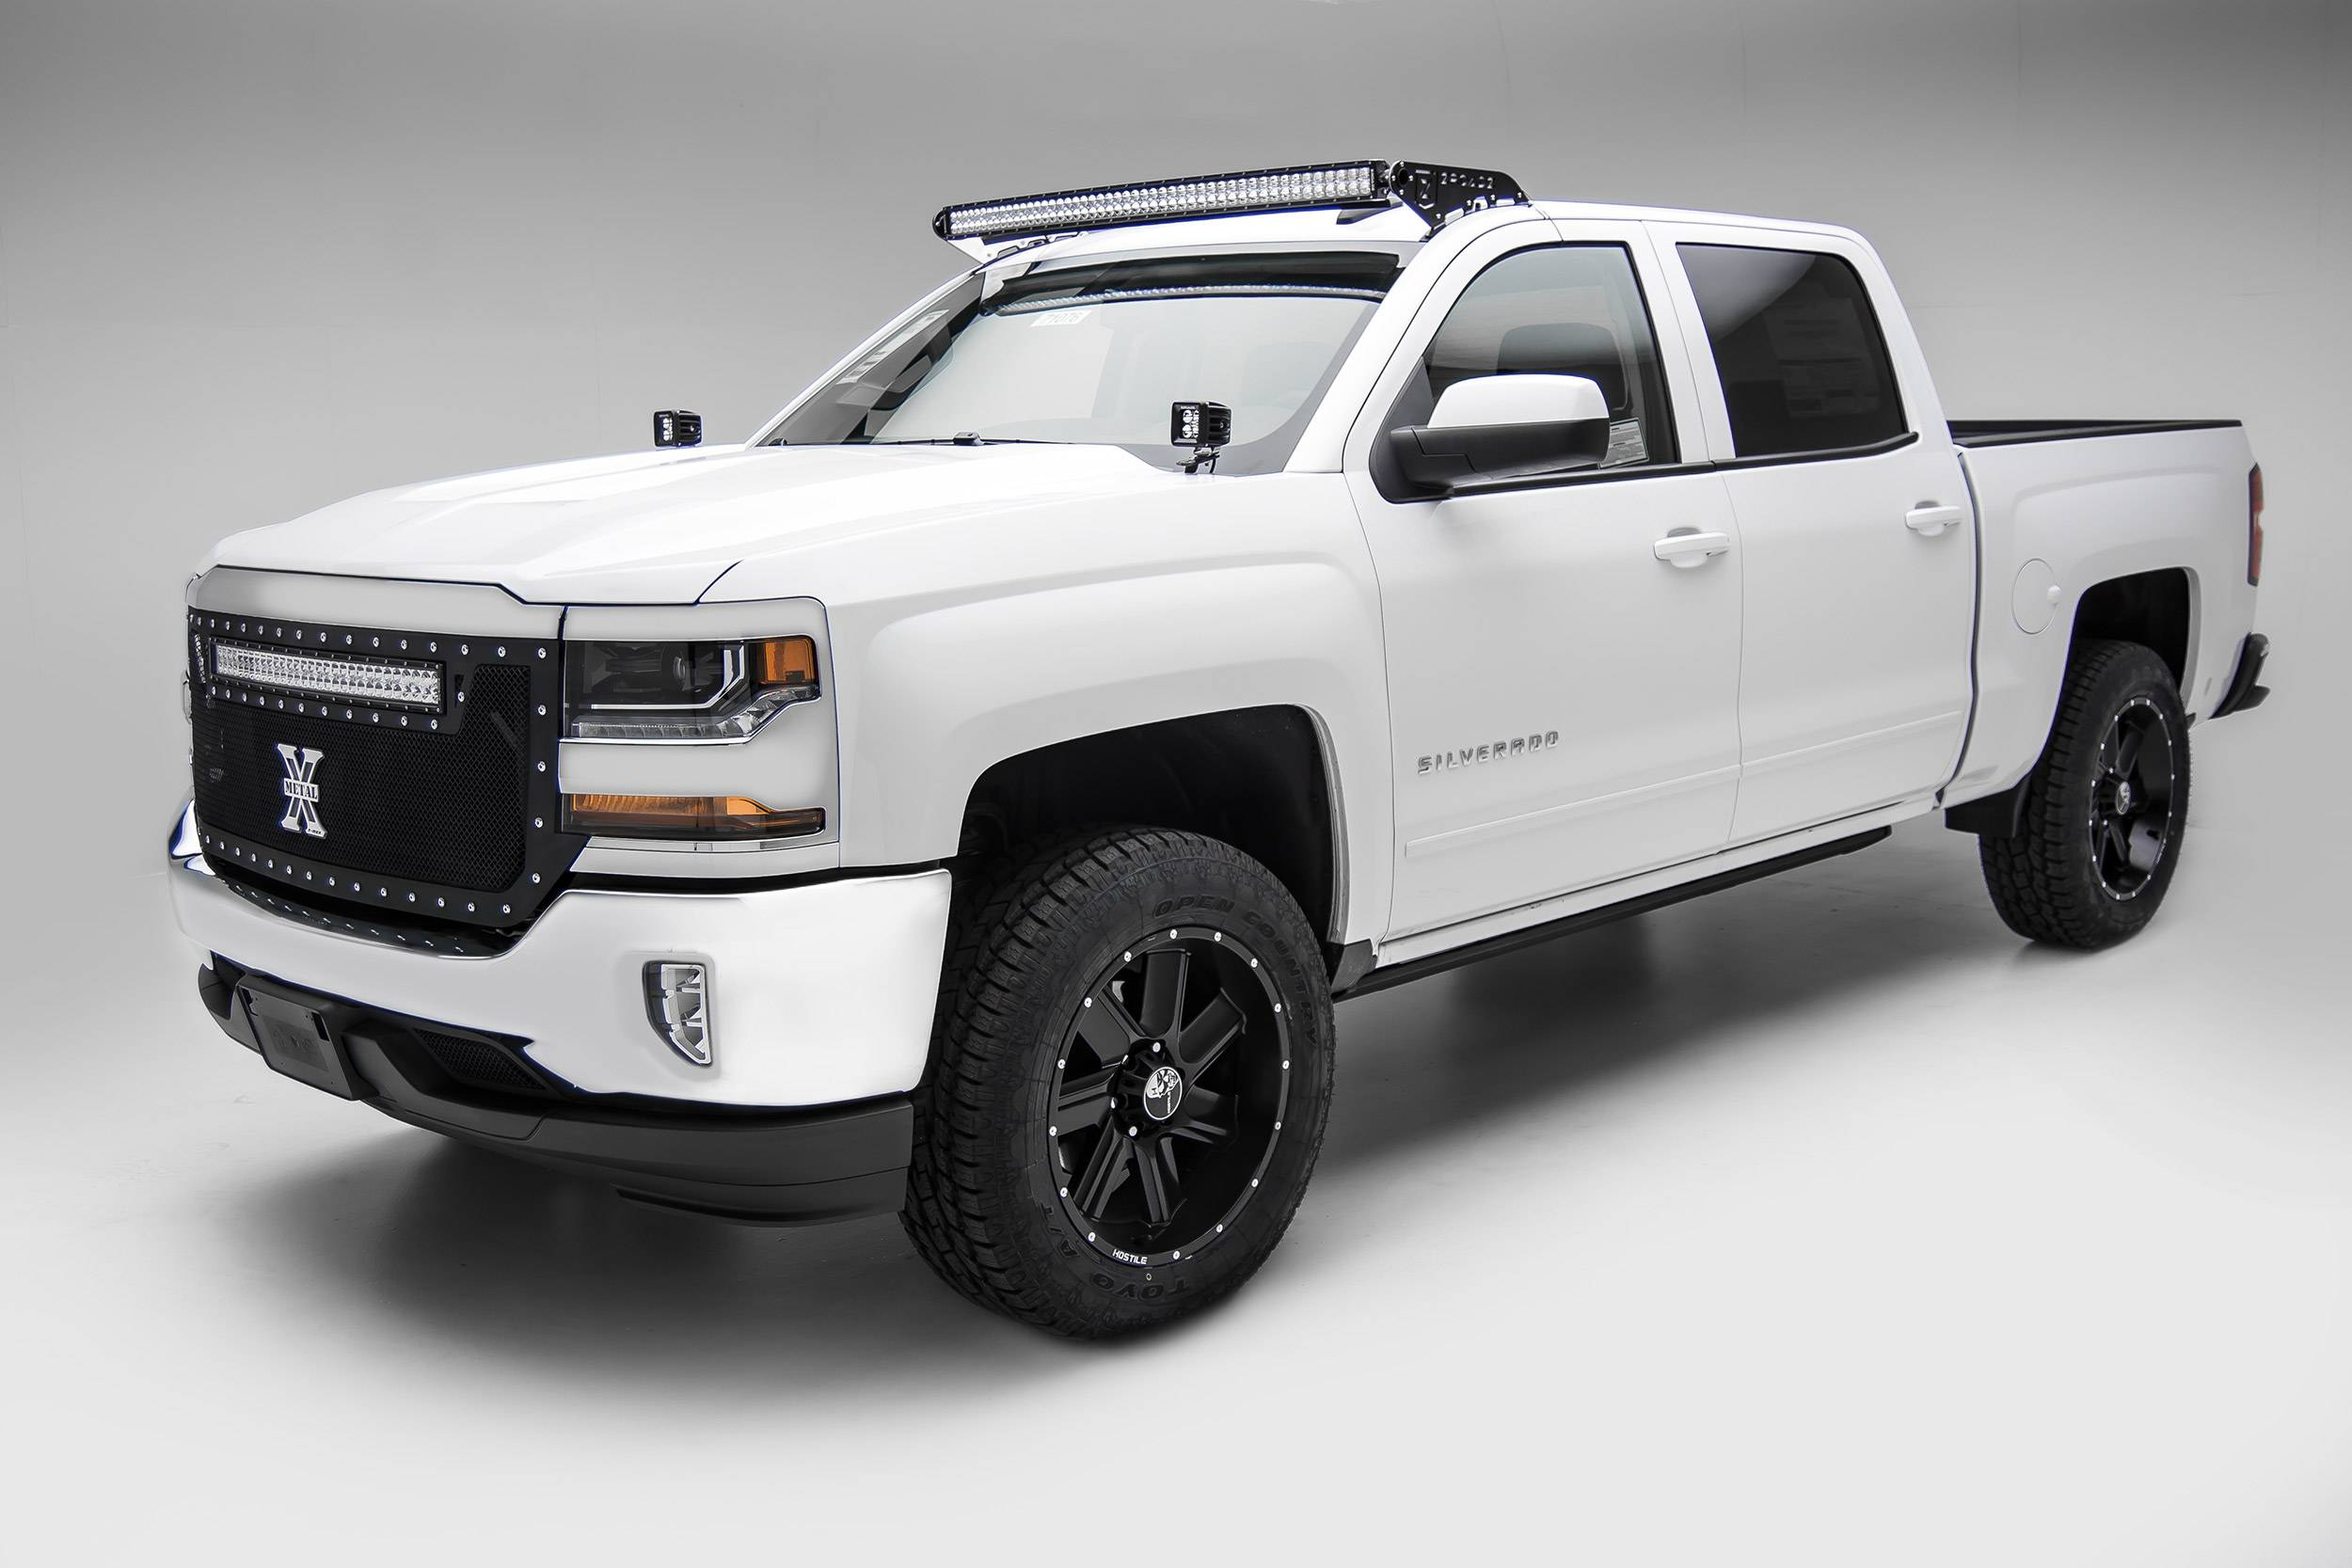 ZROADZ                                             - Silverado, Sierra Front Roof LED Kit, Incl. 50 Inch LED Curved Double Row Light Bar - PN #Z332081-KIT-C